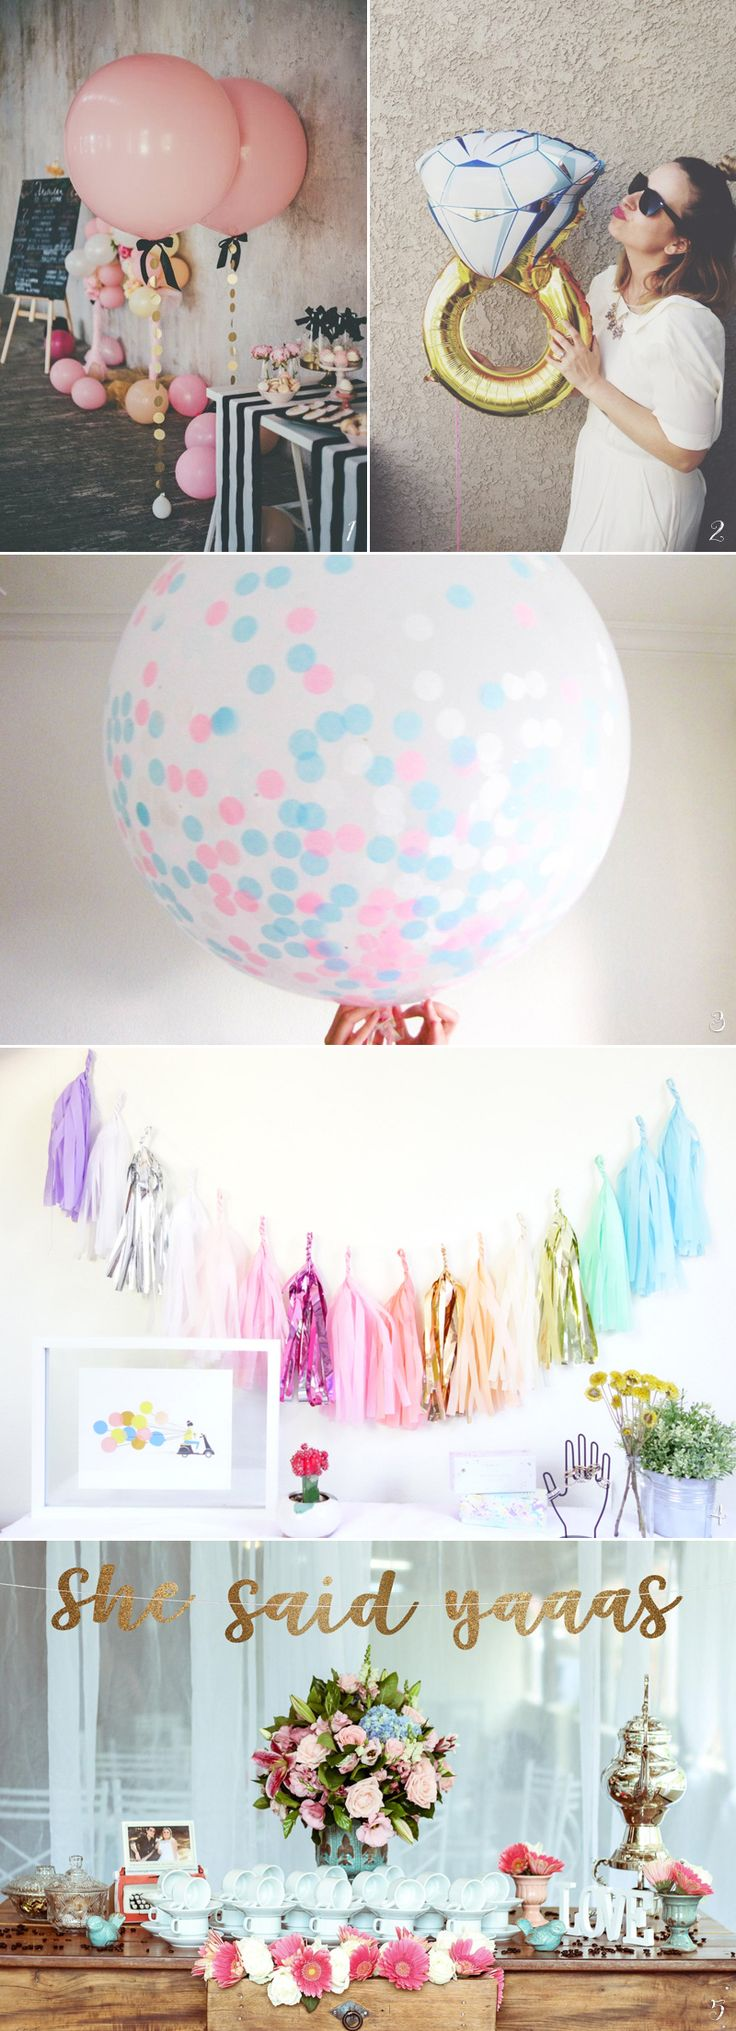 30 Creative Things You Need to Throw an Awesome Bridal Shower!